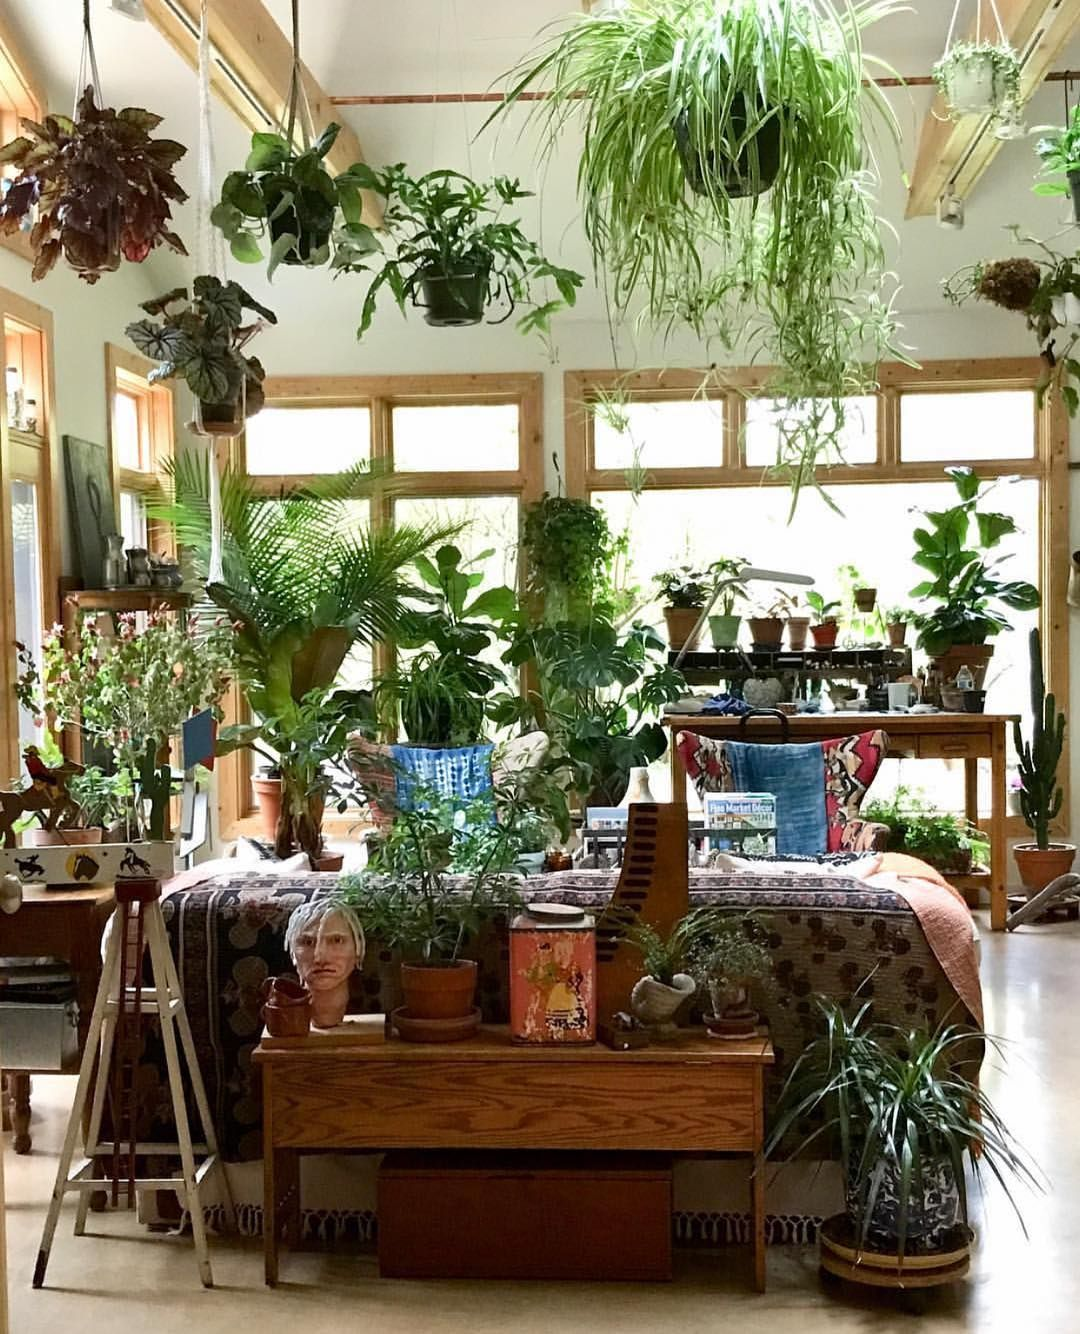 Home Decor Plants Bohemian Life Boho Home Design 43 Decor